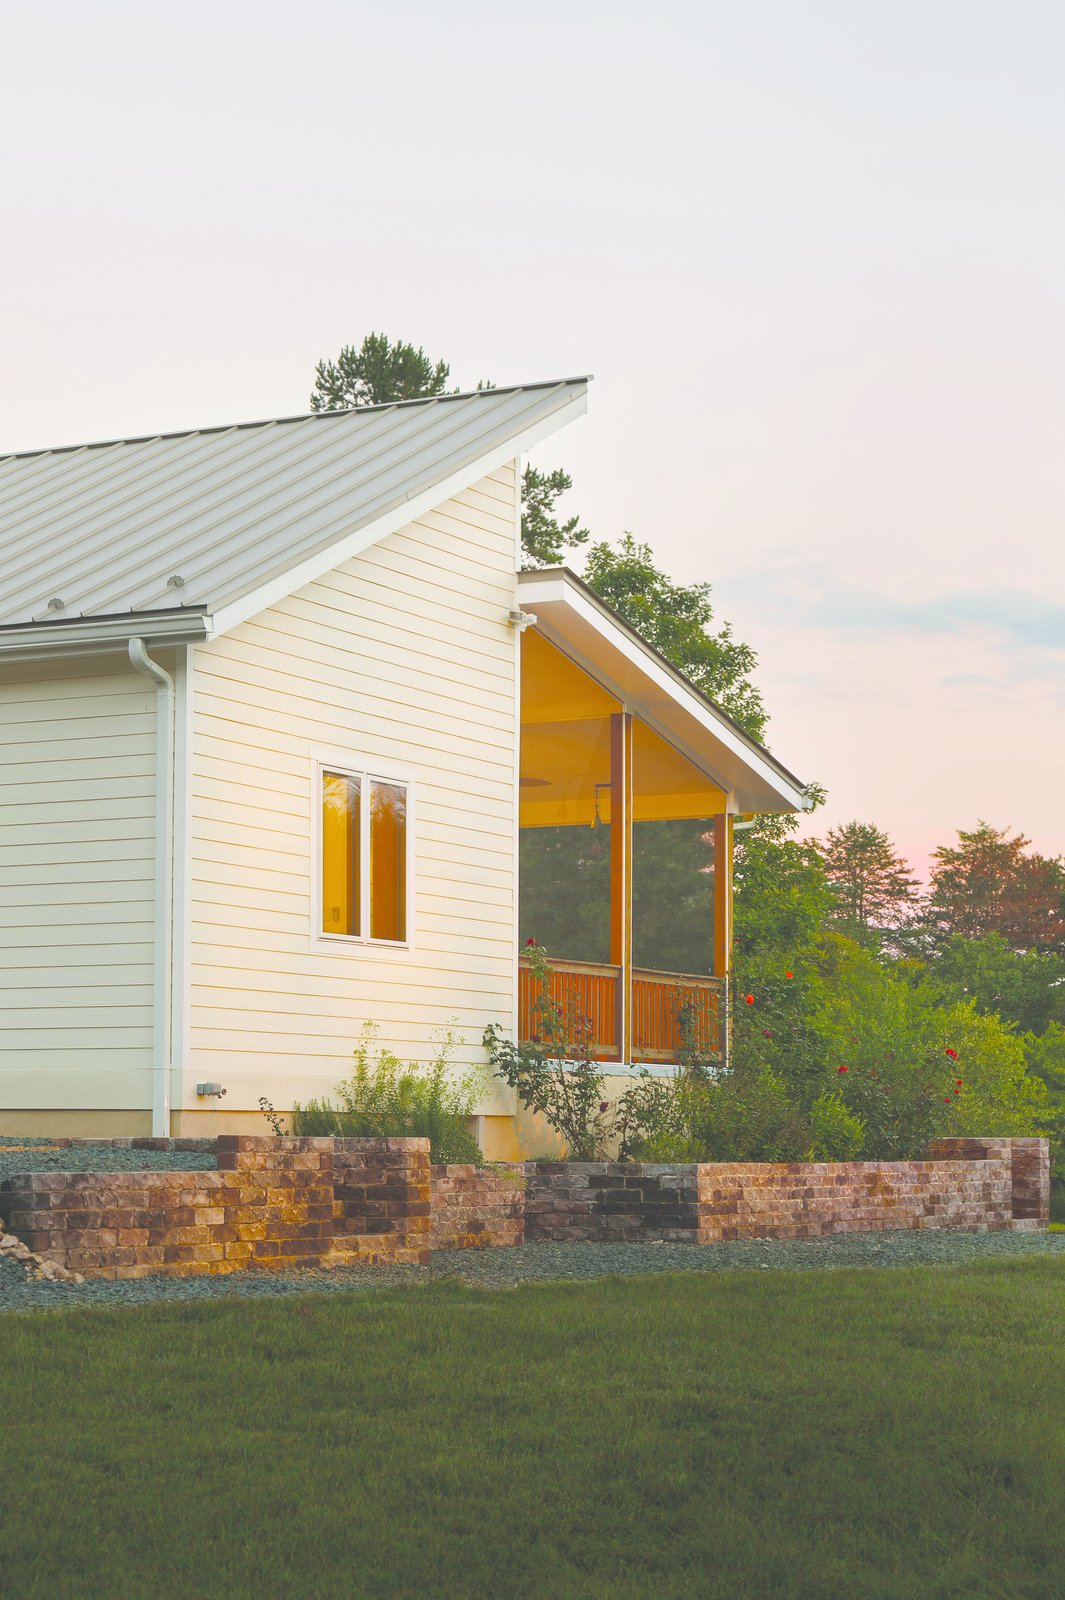 The Ridgeline model, like all homes from Deltec's Renew Collection, is pre-designed to maximize energy efficiency, and consumes 2/3 less energy than a typical home.